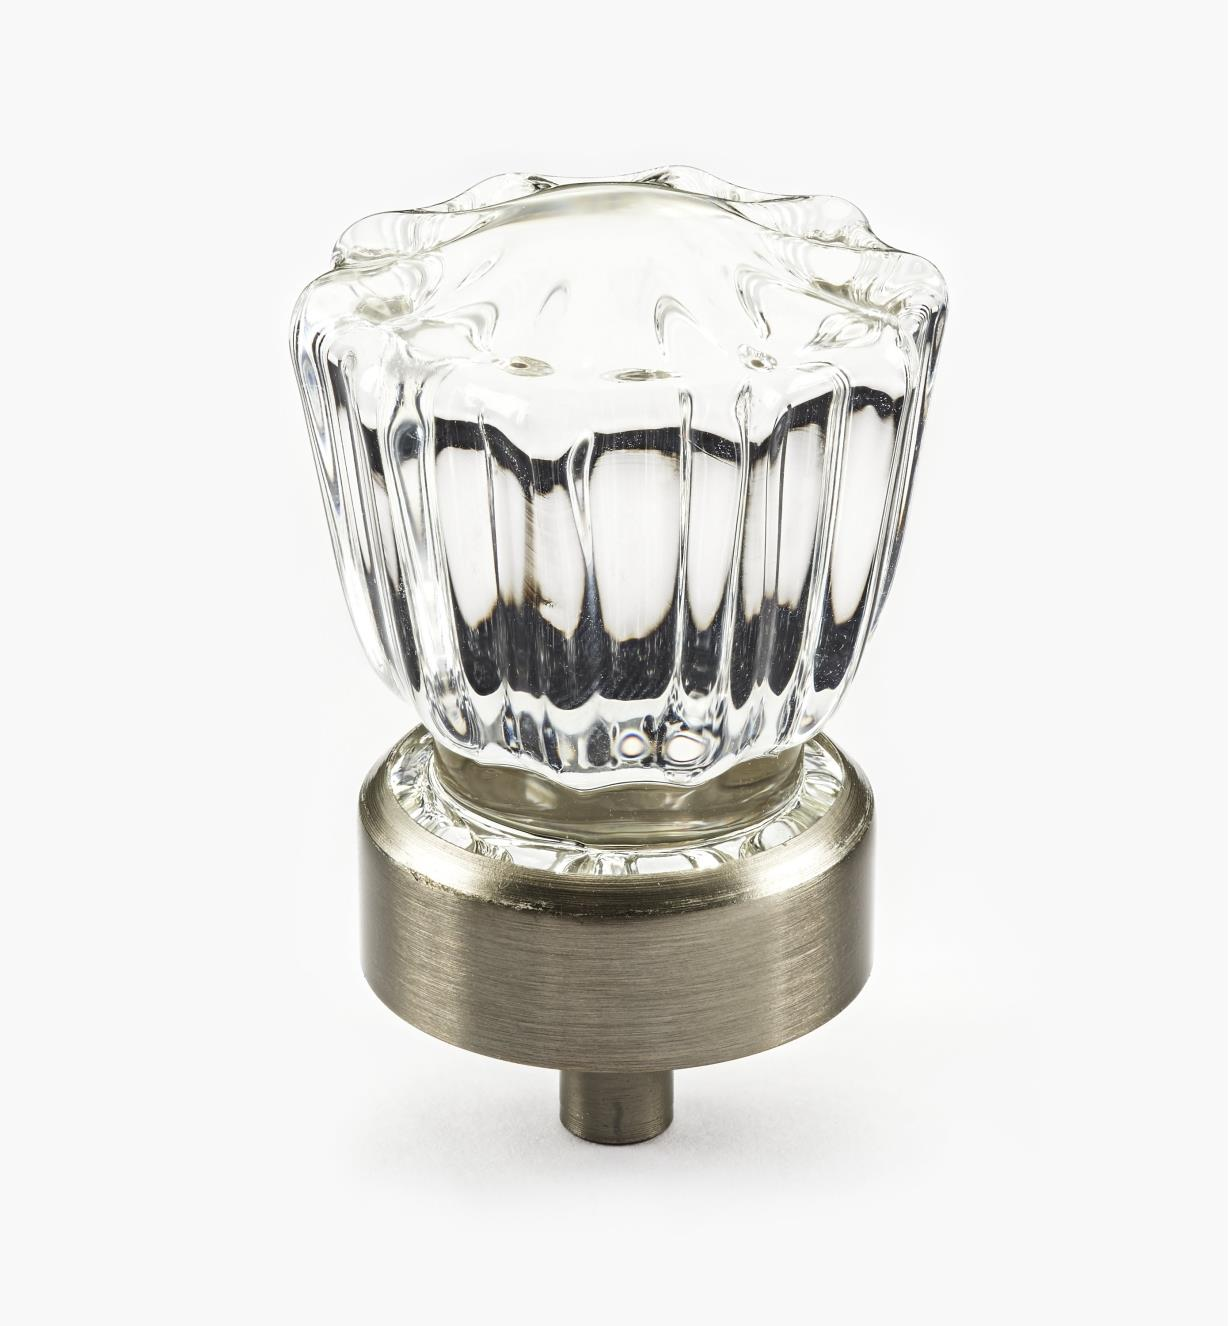 01A3822 - French-Style Glass Knob, Brushed Nickel